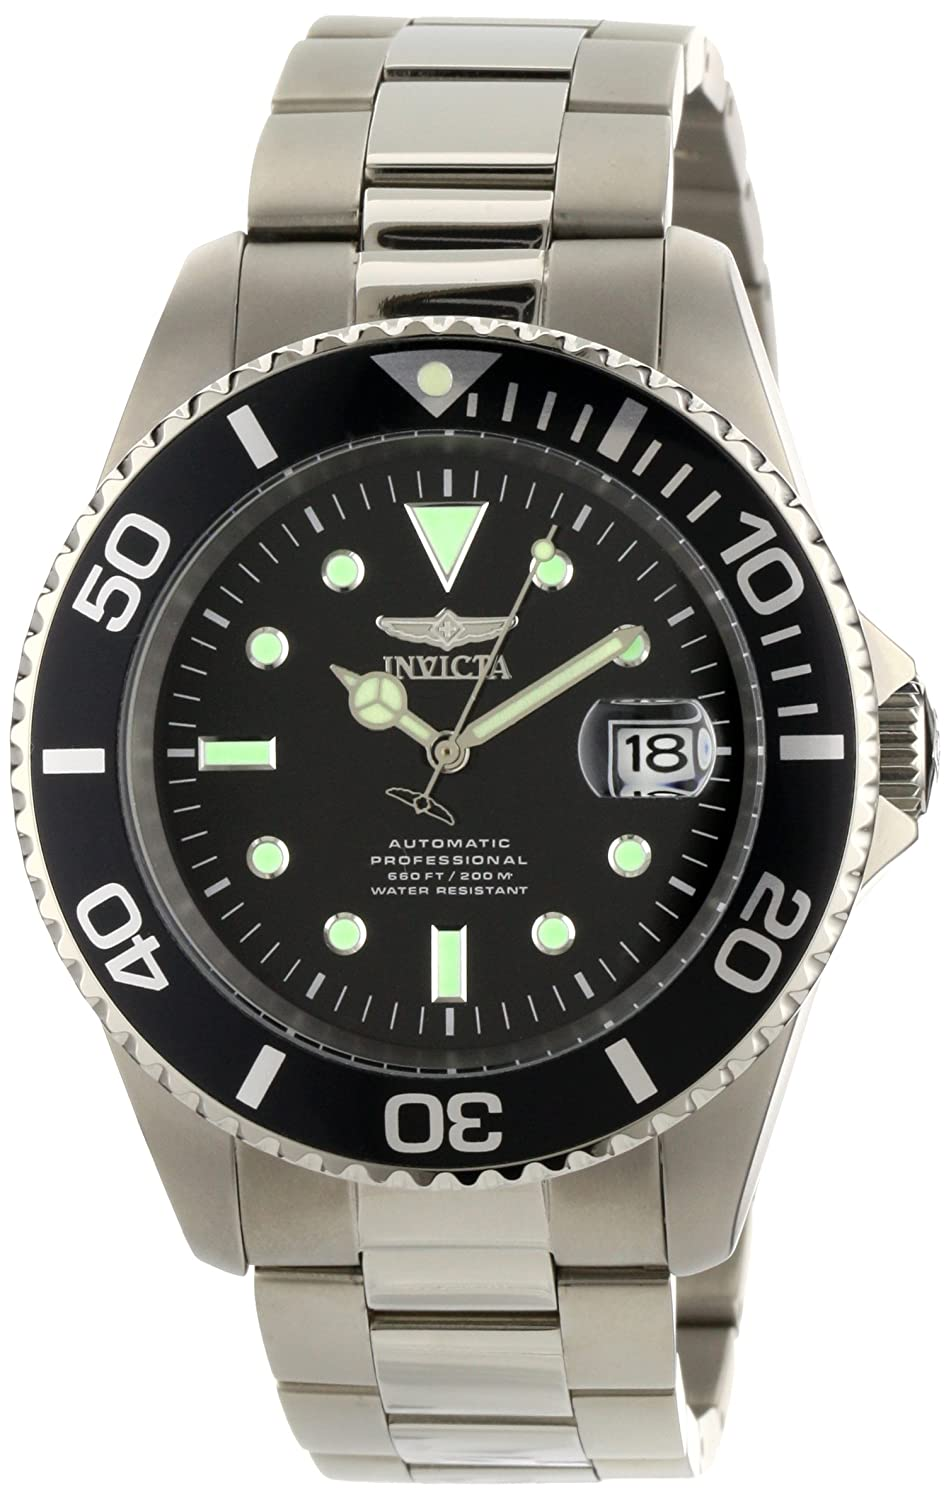 Invicta Men's 0420 Pro Diver Automatic Black Dial Titanium Watch